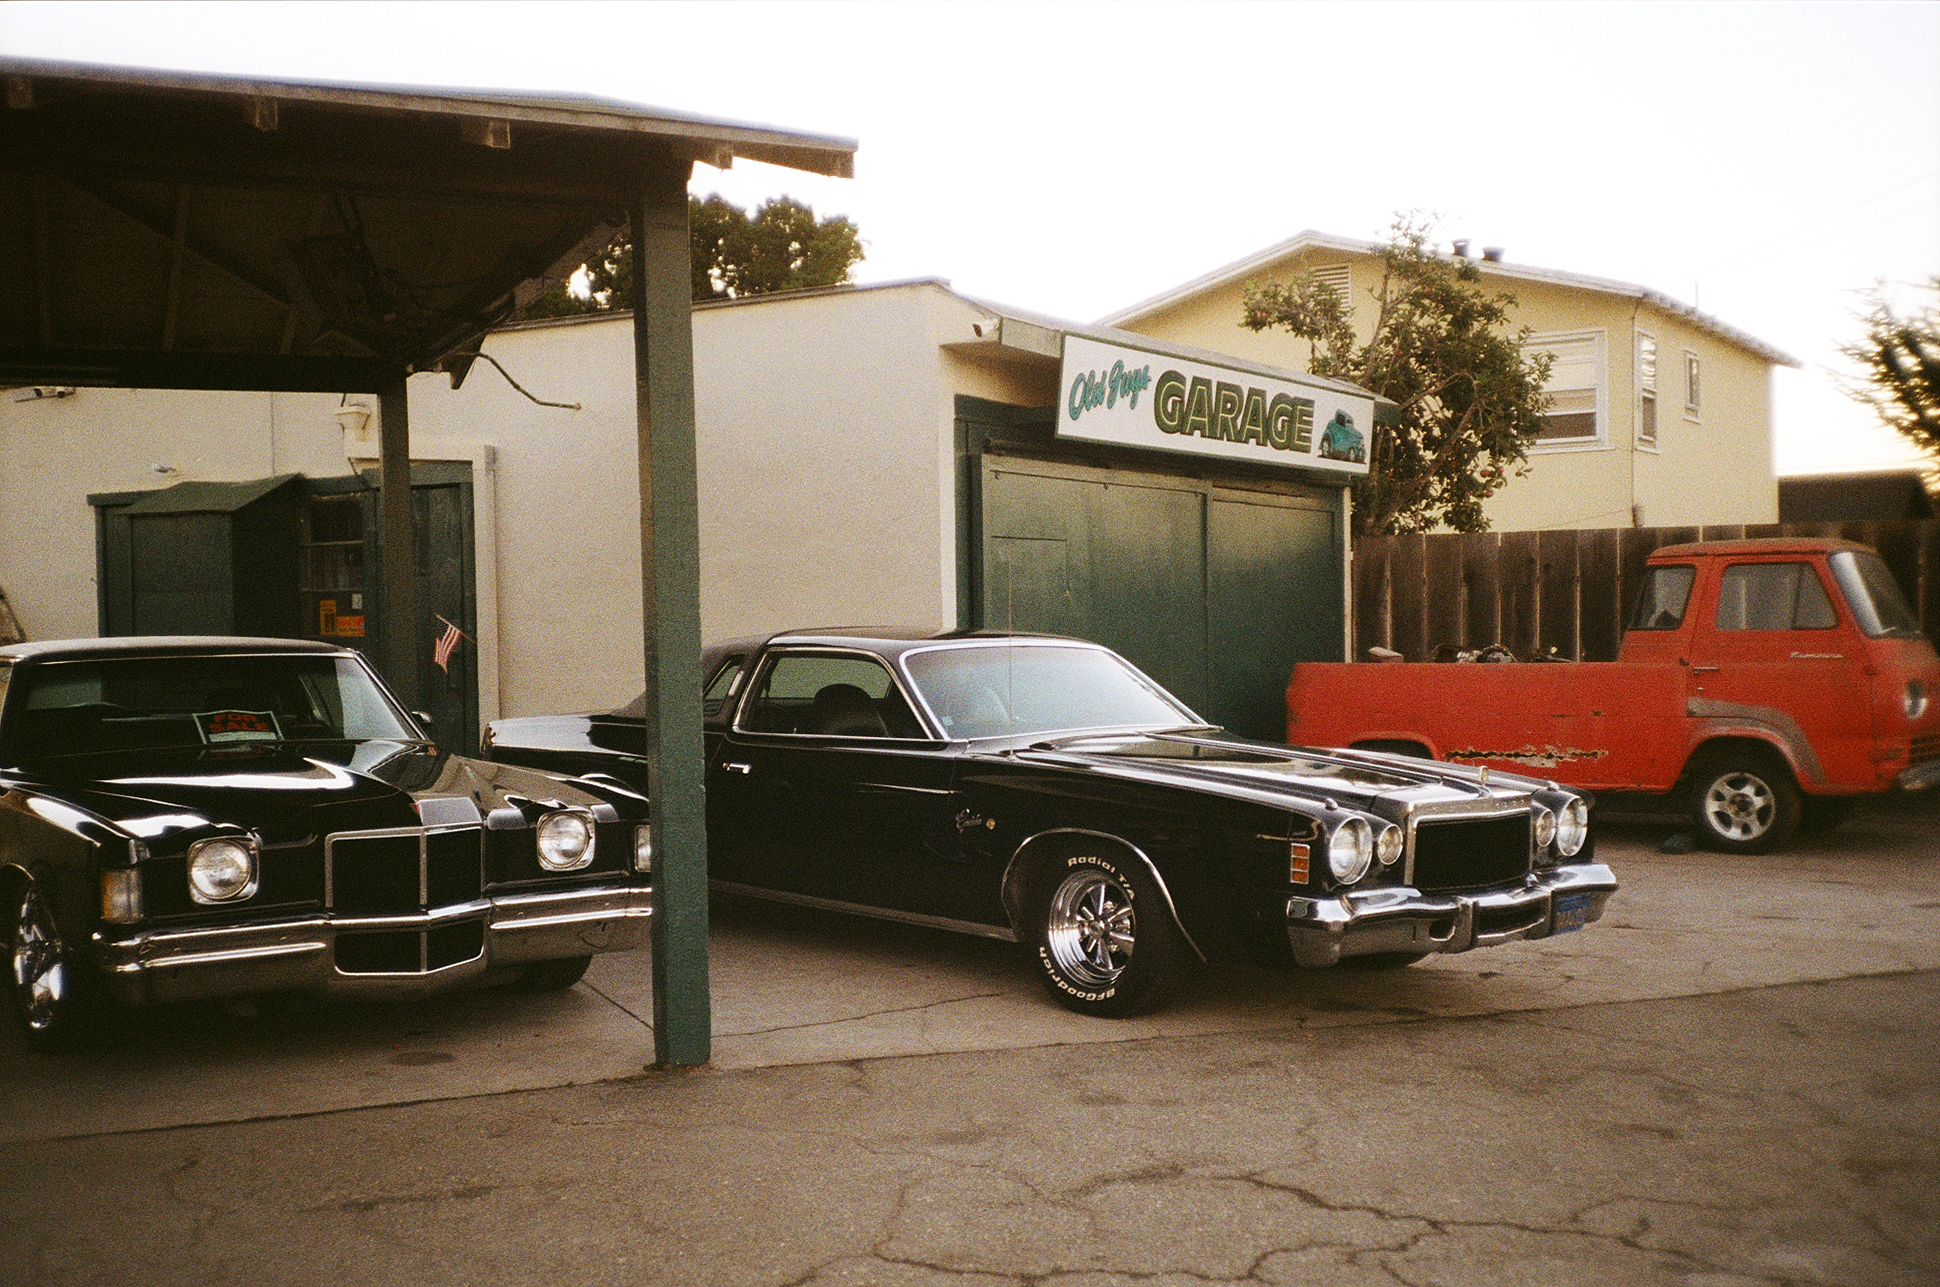 California 35mm film diary by London based photographer Ailera Stone